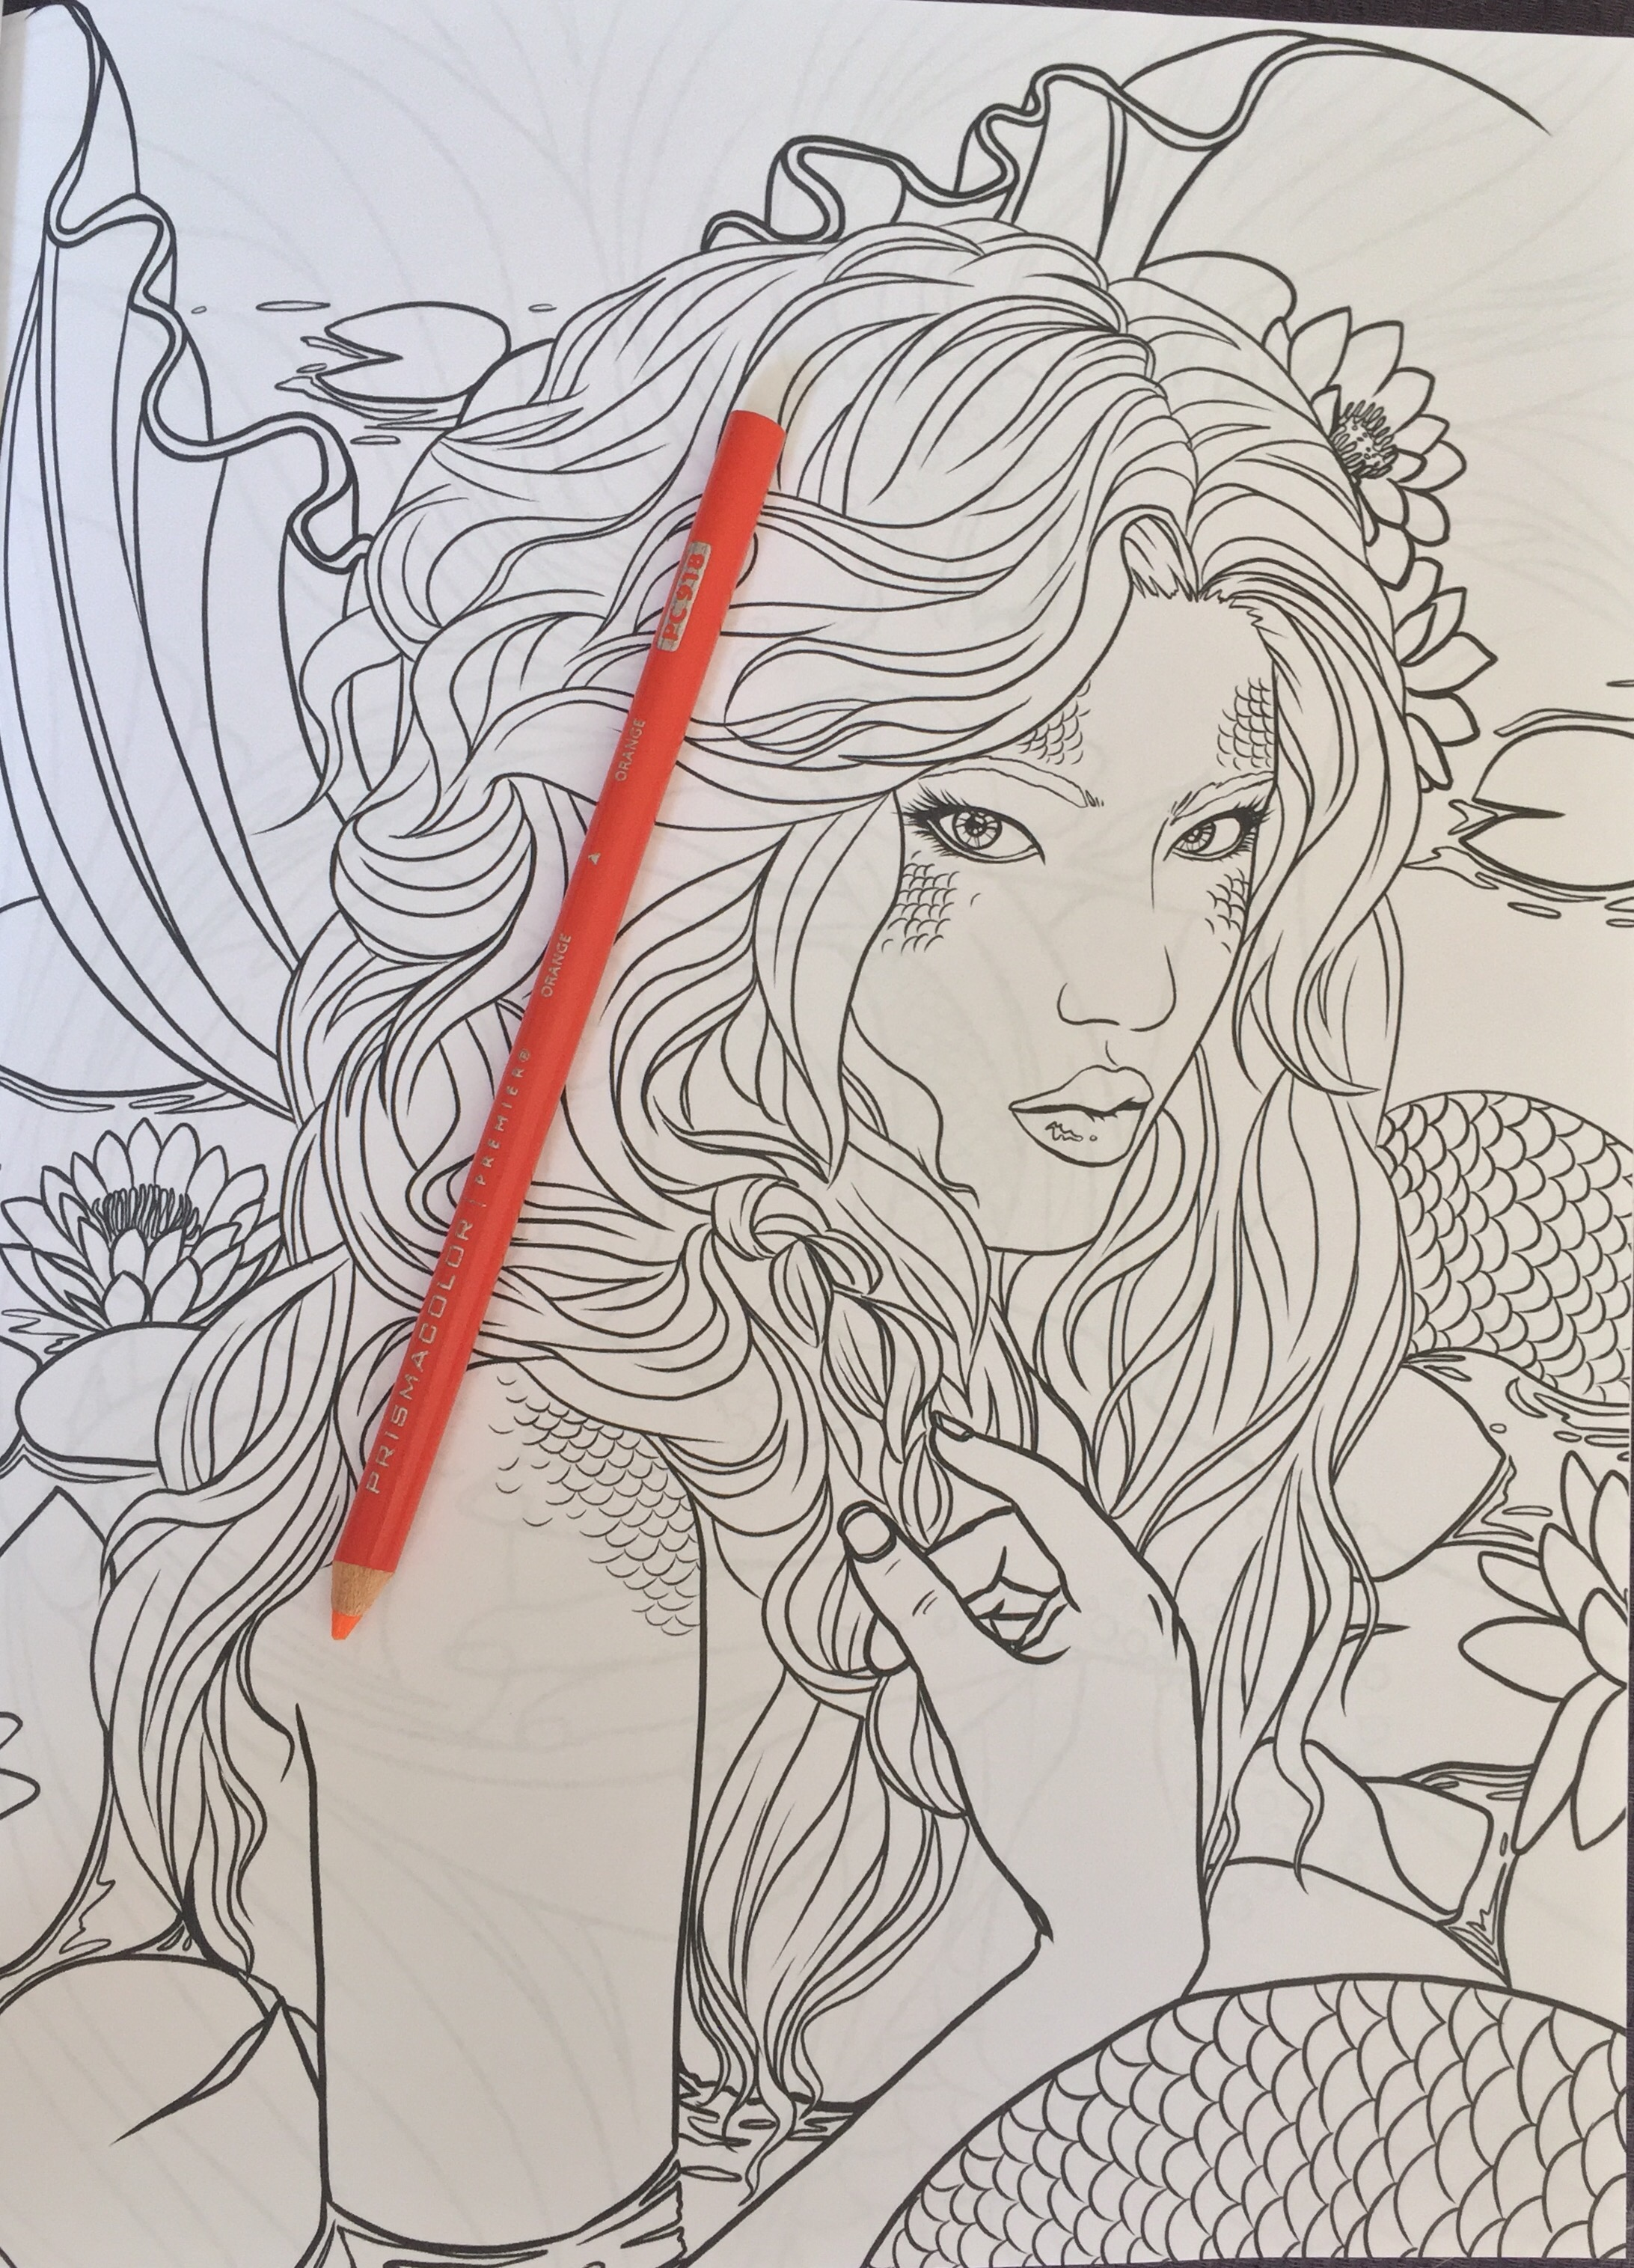 Fairy art coloring book by selina fenech - Fantasy Coloring Completed Pictures Colouring Adult Colour Color Pencil Art Therapy Stress Relief Selina Fenech